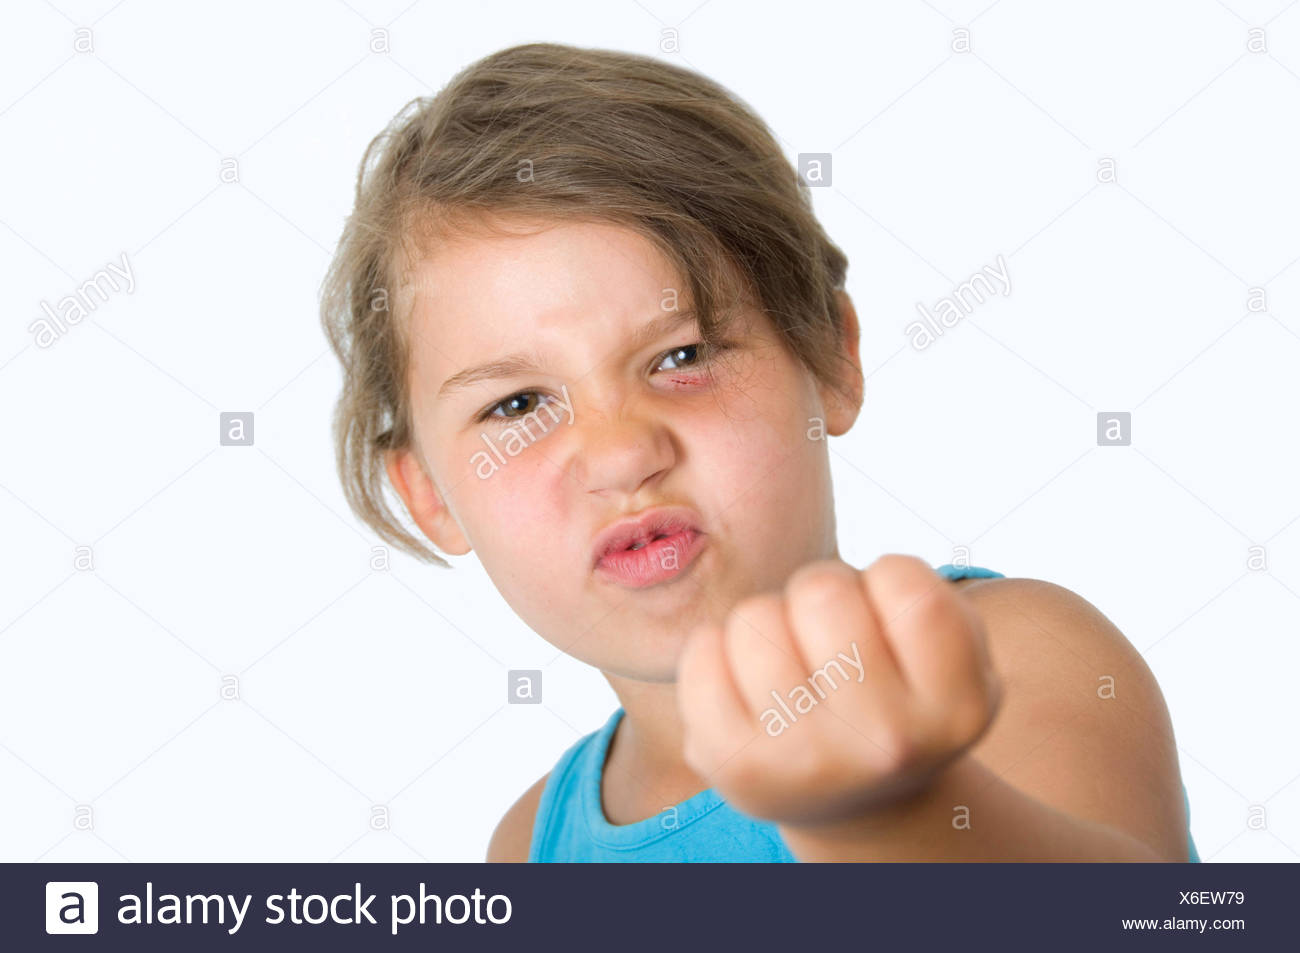 Girl with raised fist Stock Photo